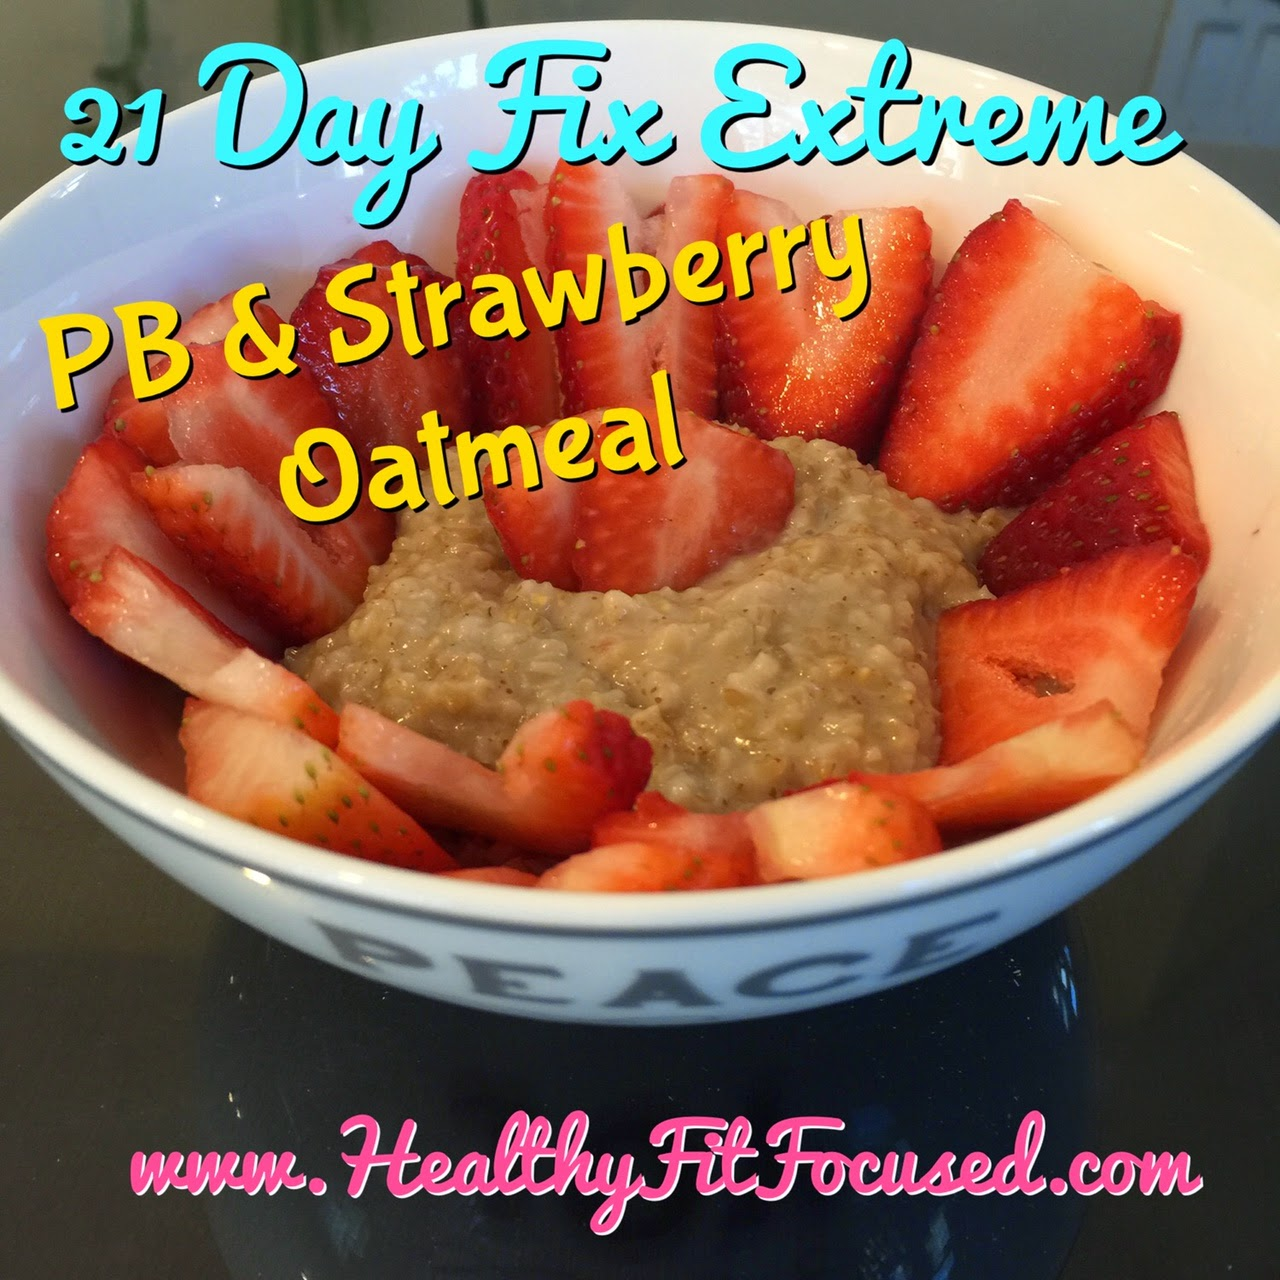 21 Day Fix and 21 Day Fix Extreme Approved Recipe, PB & Strawberry Oatmeal, www.HealthyFitFocused.com